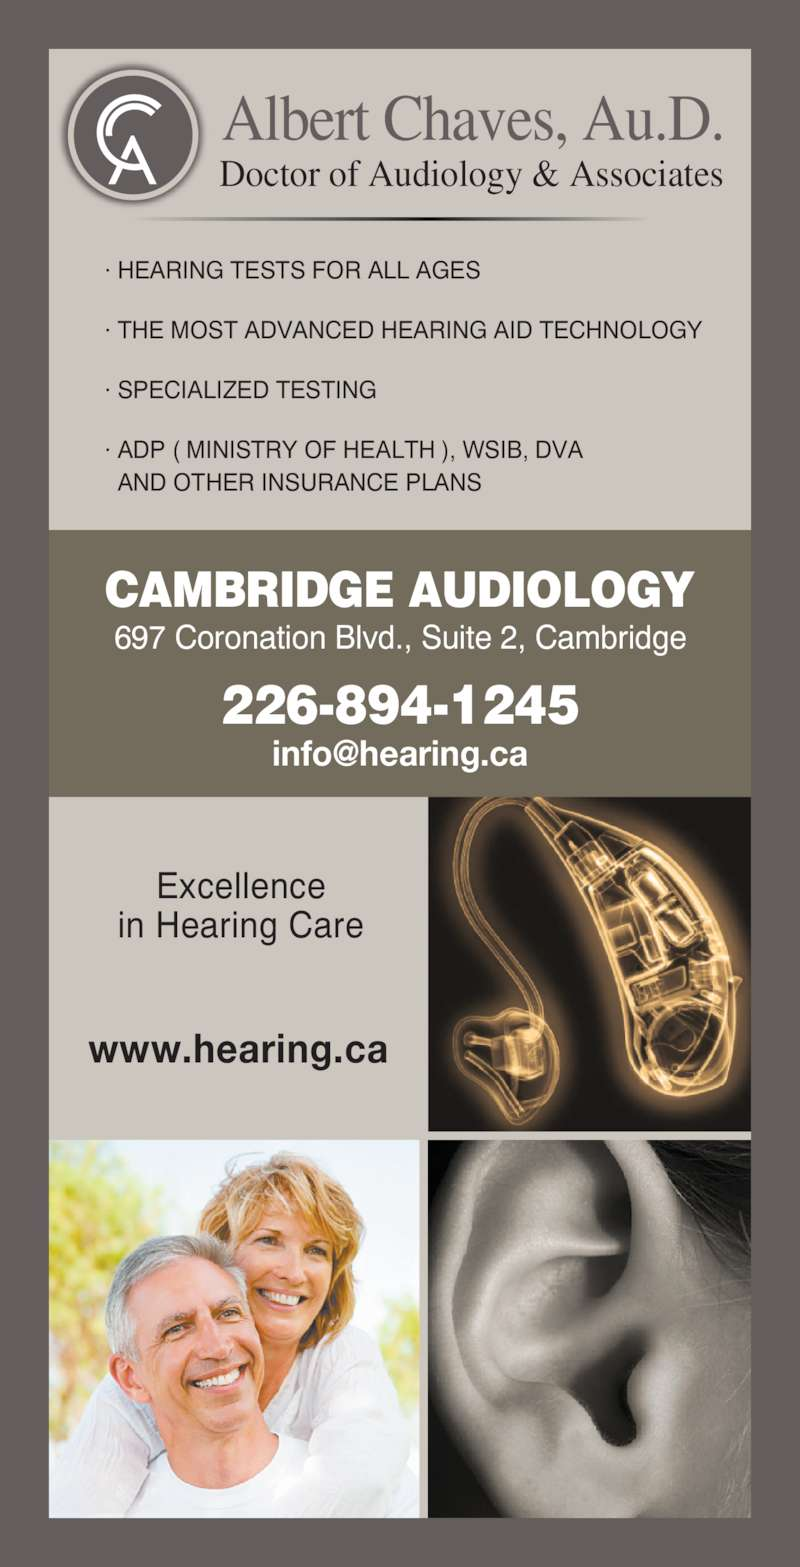 Cambridge Audiology (519-624-2230) - Display Ad - Albert Chaves, Au.D. Doctor of Audiology & Associates Excellence in Hearing Care www.hearing.ca · HEARING TESTS FOR ALL AGES · THE MOST ADVANCED HEARING AID TECHNOLOGY · SPECIALIZED TESTING · ADP ( MINISTRY OF HEALTH ), WSIB, DVA   AND OTHER INSURANCE PLANS 697 Coronation Blvd., Suite 2, Cambridge 226-894-1245 CAMBRIDGE AUDIOLOGY